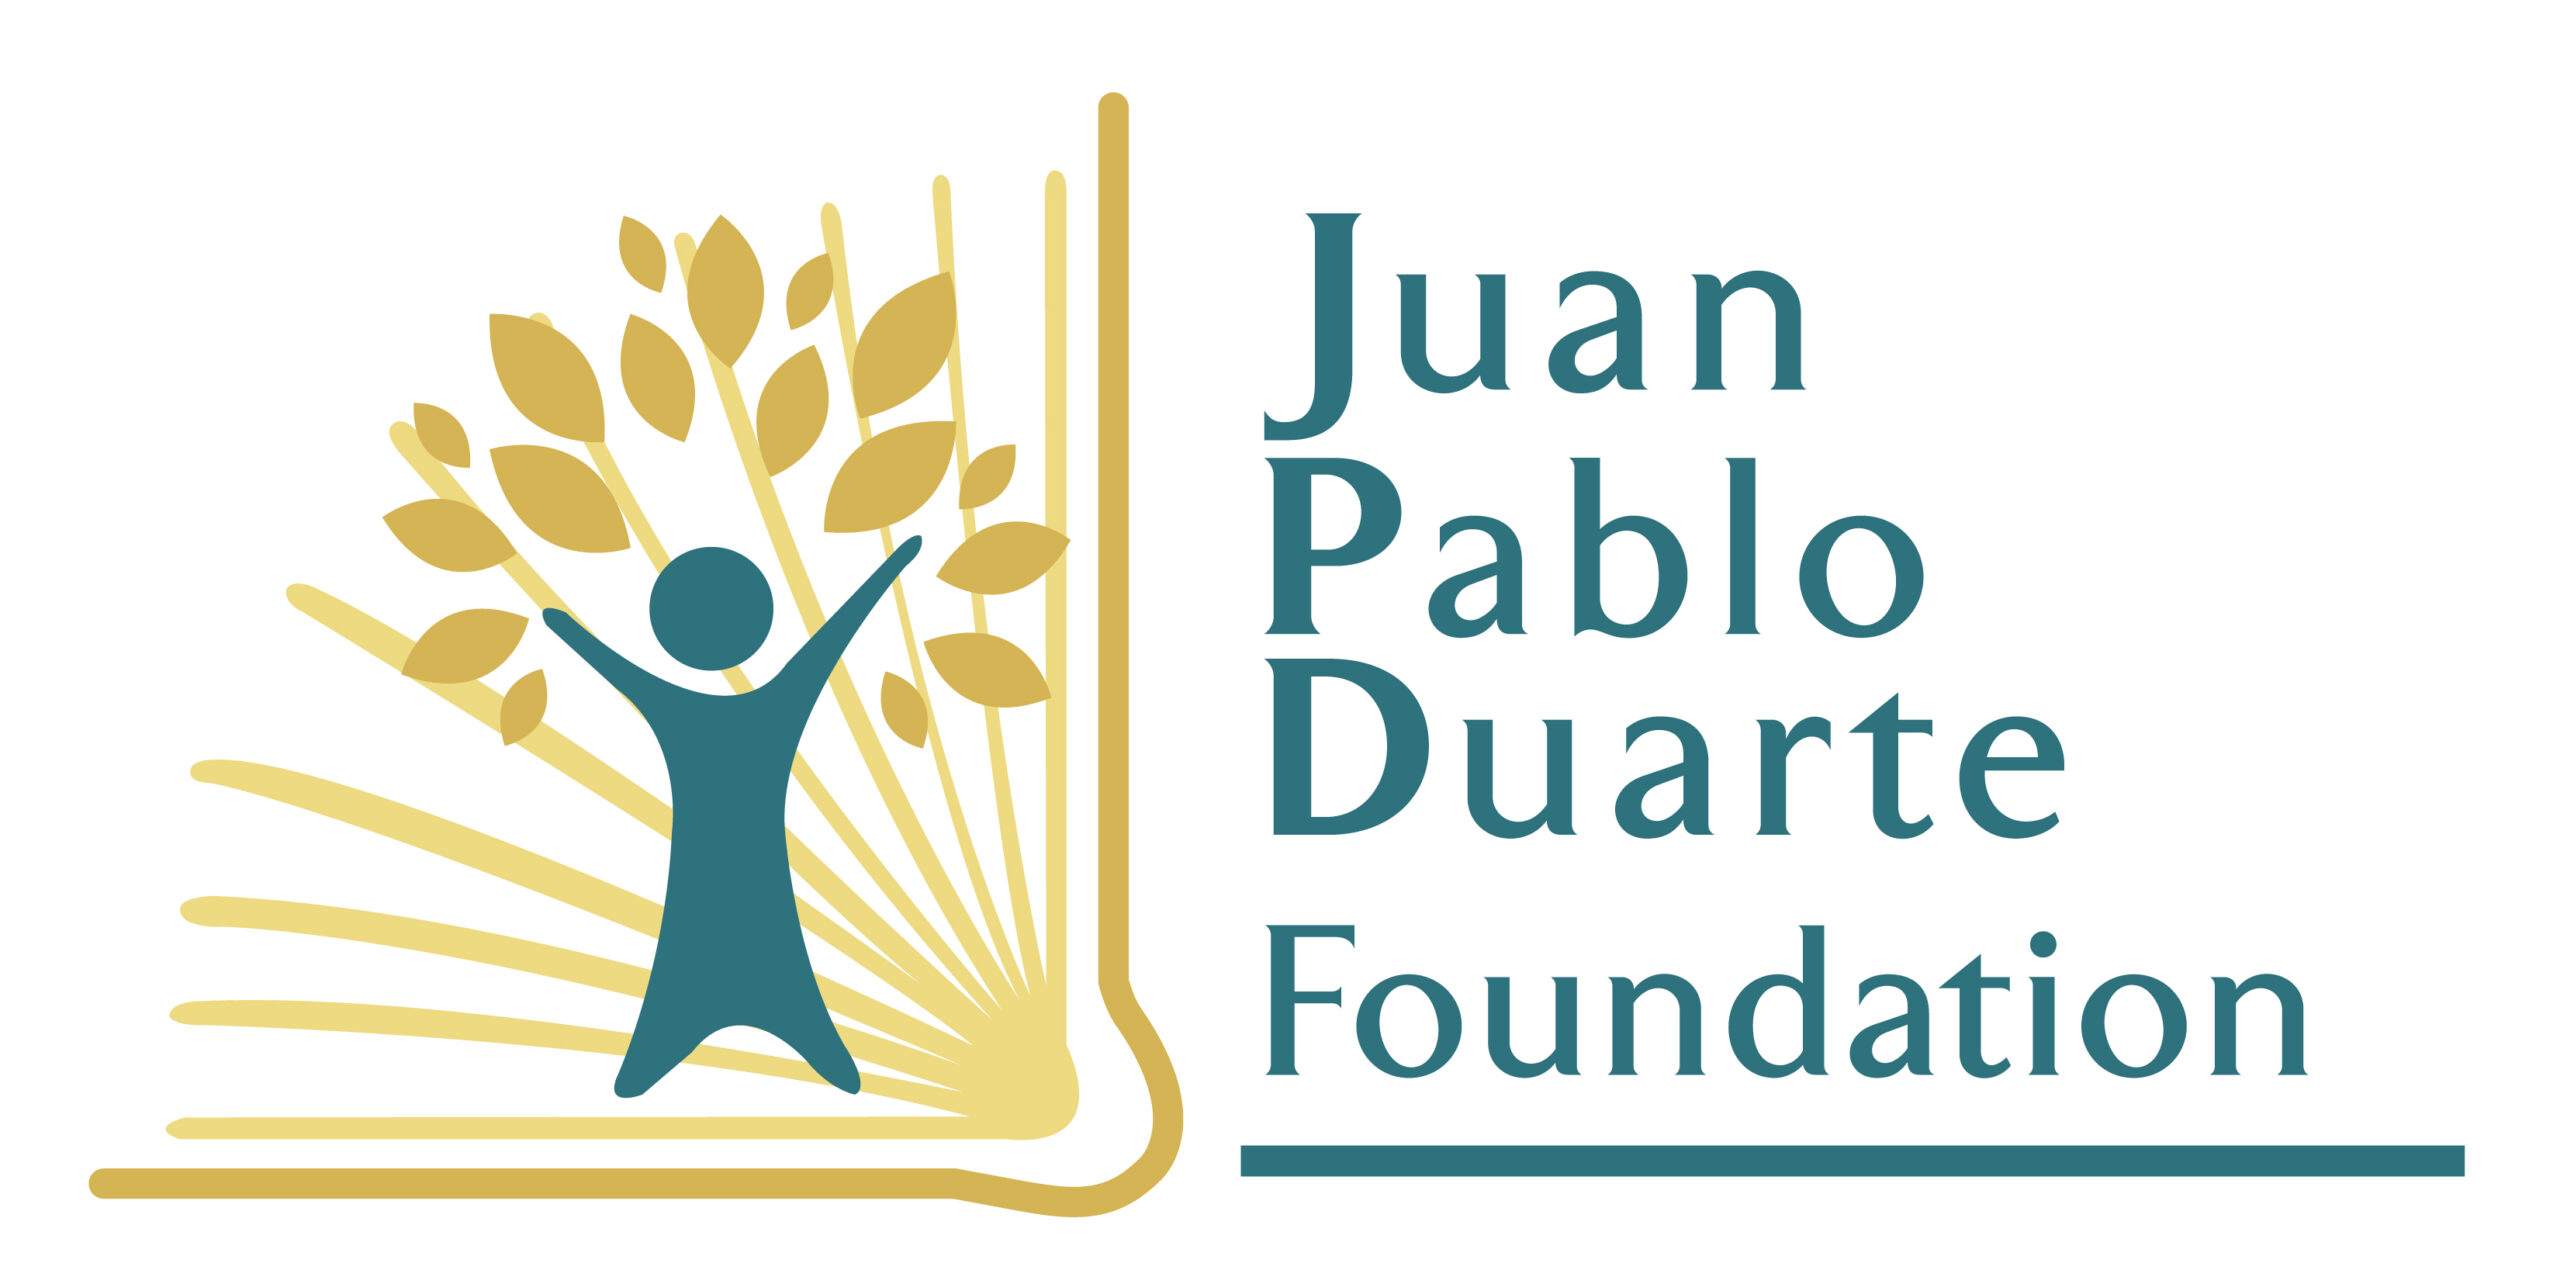 Juan Pablo Duarte Foundation